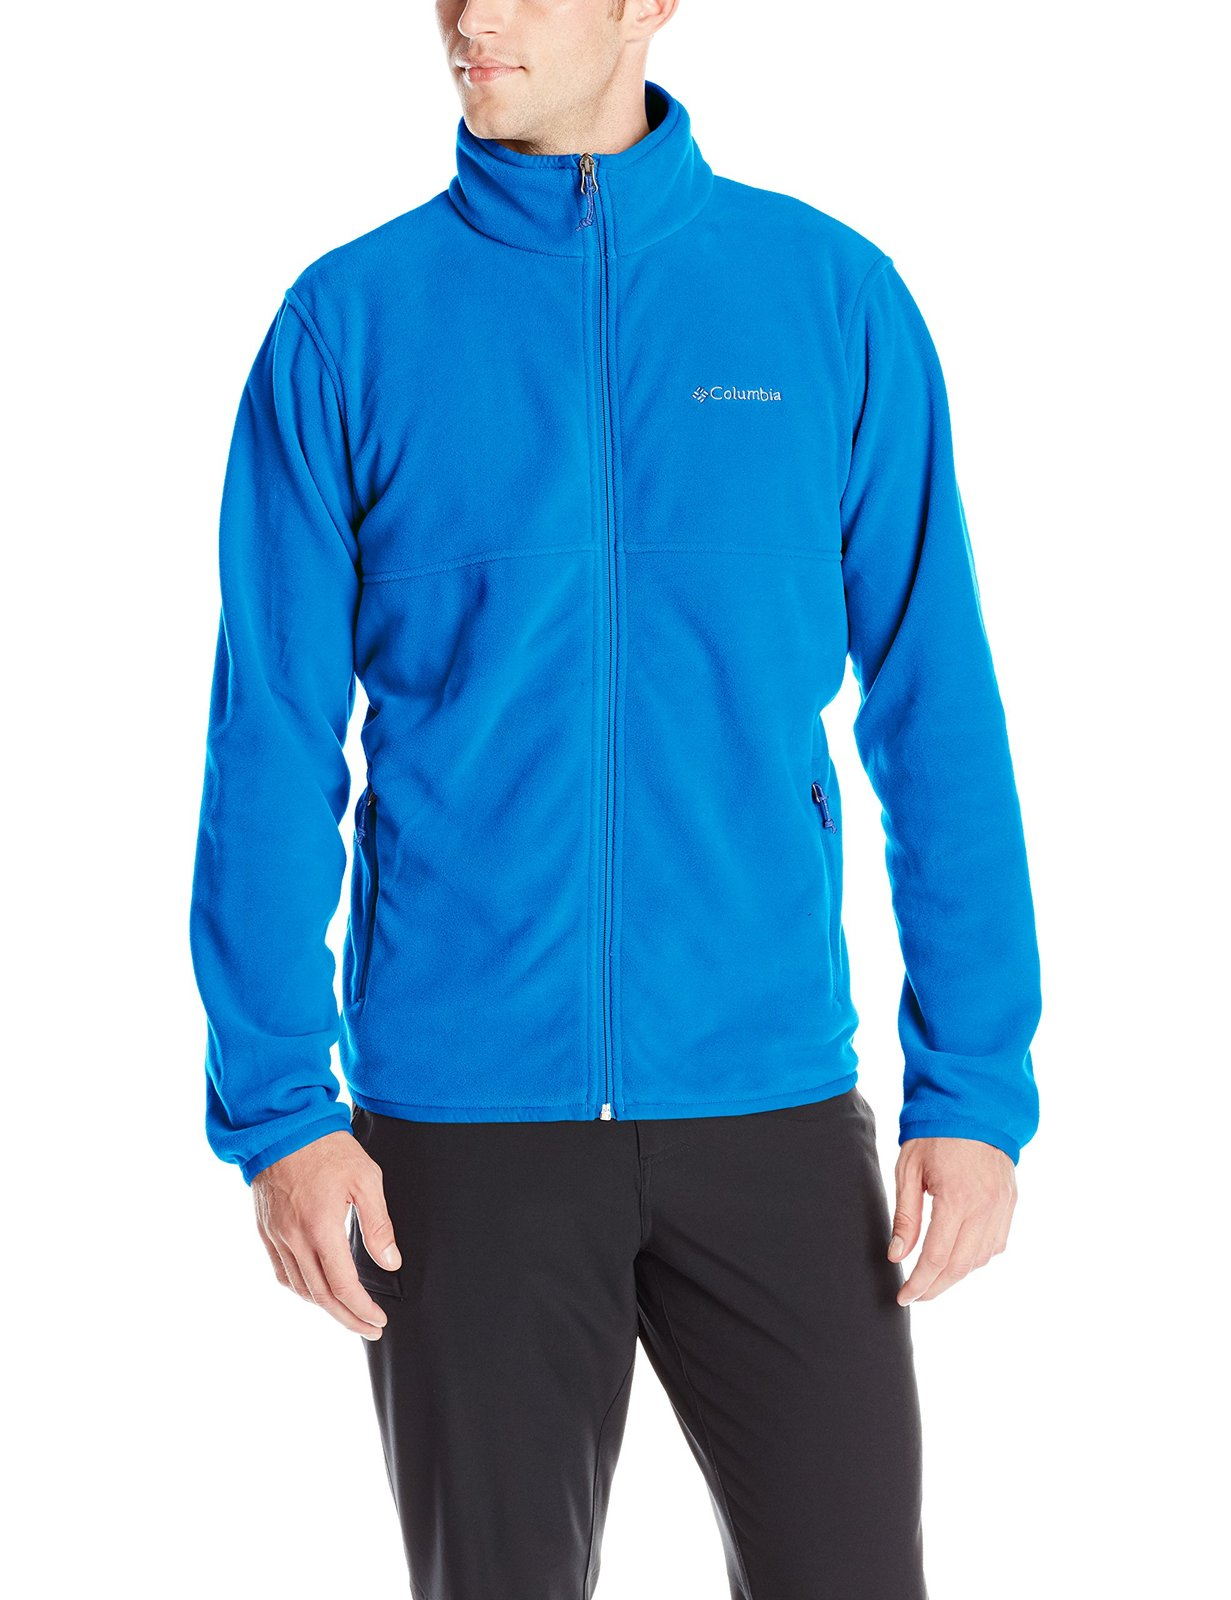 Columbia Men's Fuller Ridge Fleece Jacket, Super Blue, X-Large